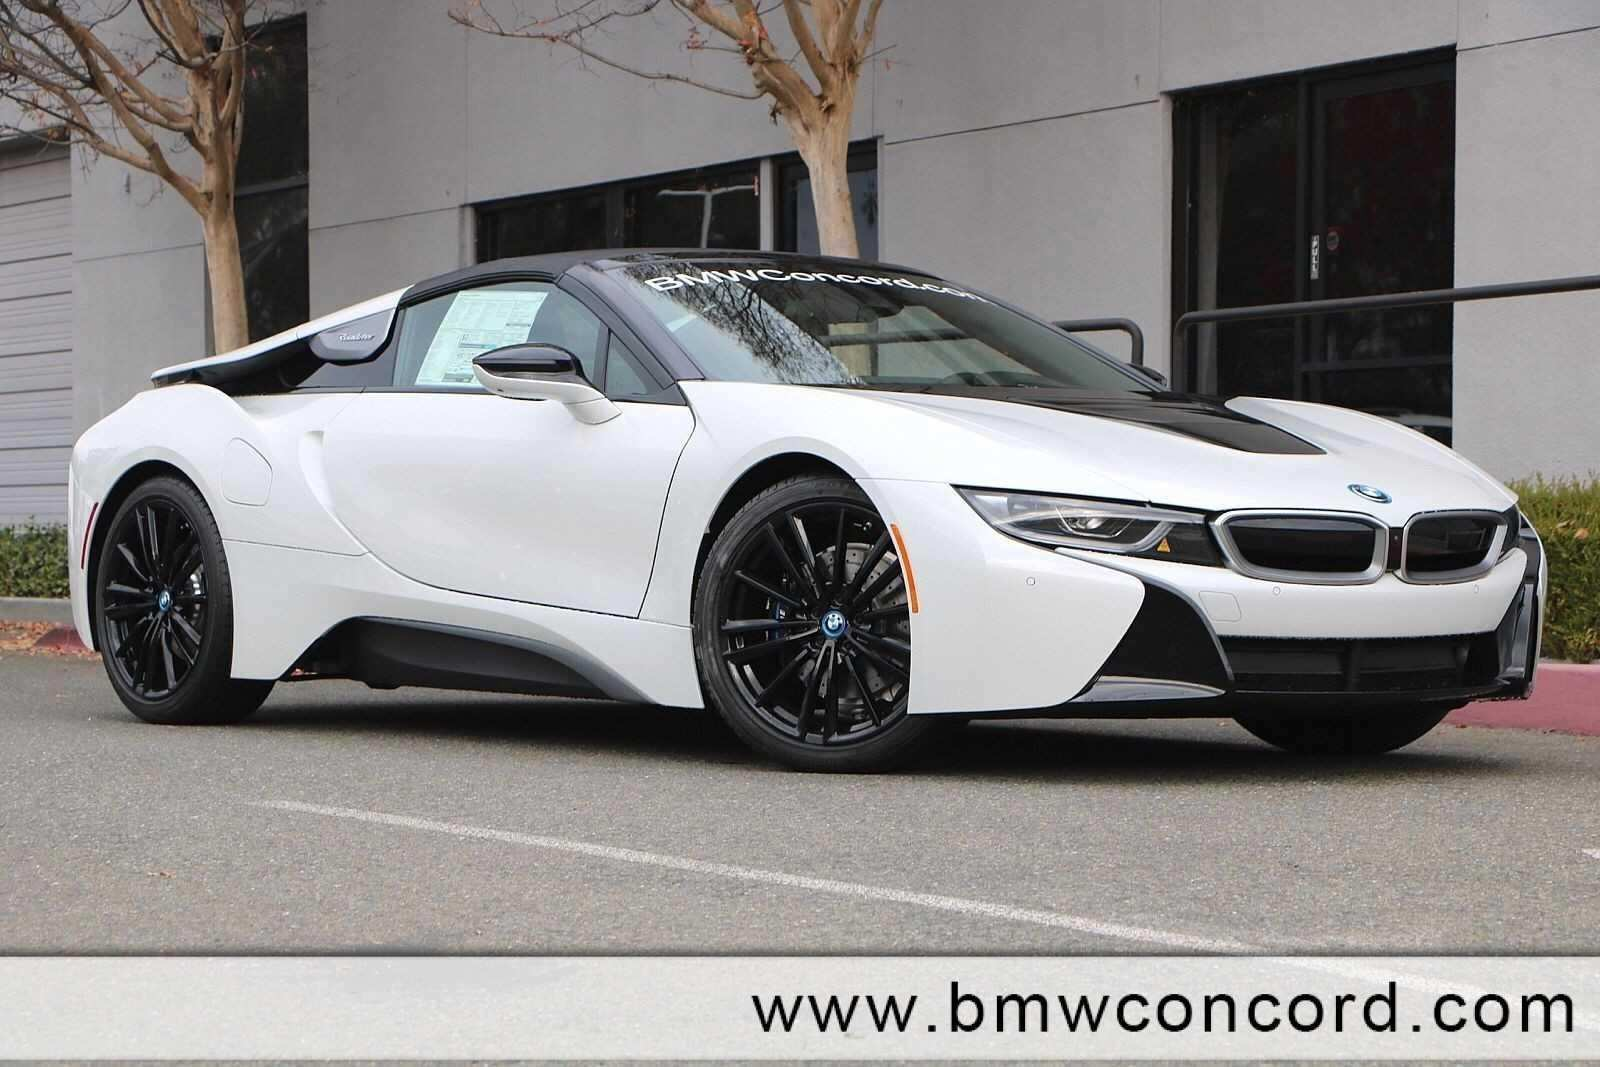 81 Best Review 2019 Bmw I8 Roadster Ratings for 2019 Bmw I8 Roadster